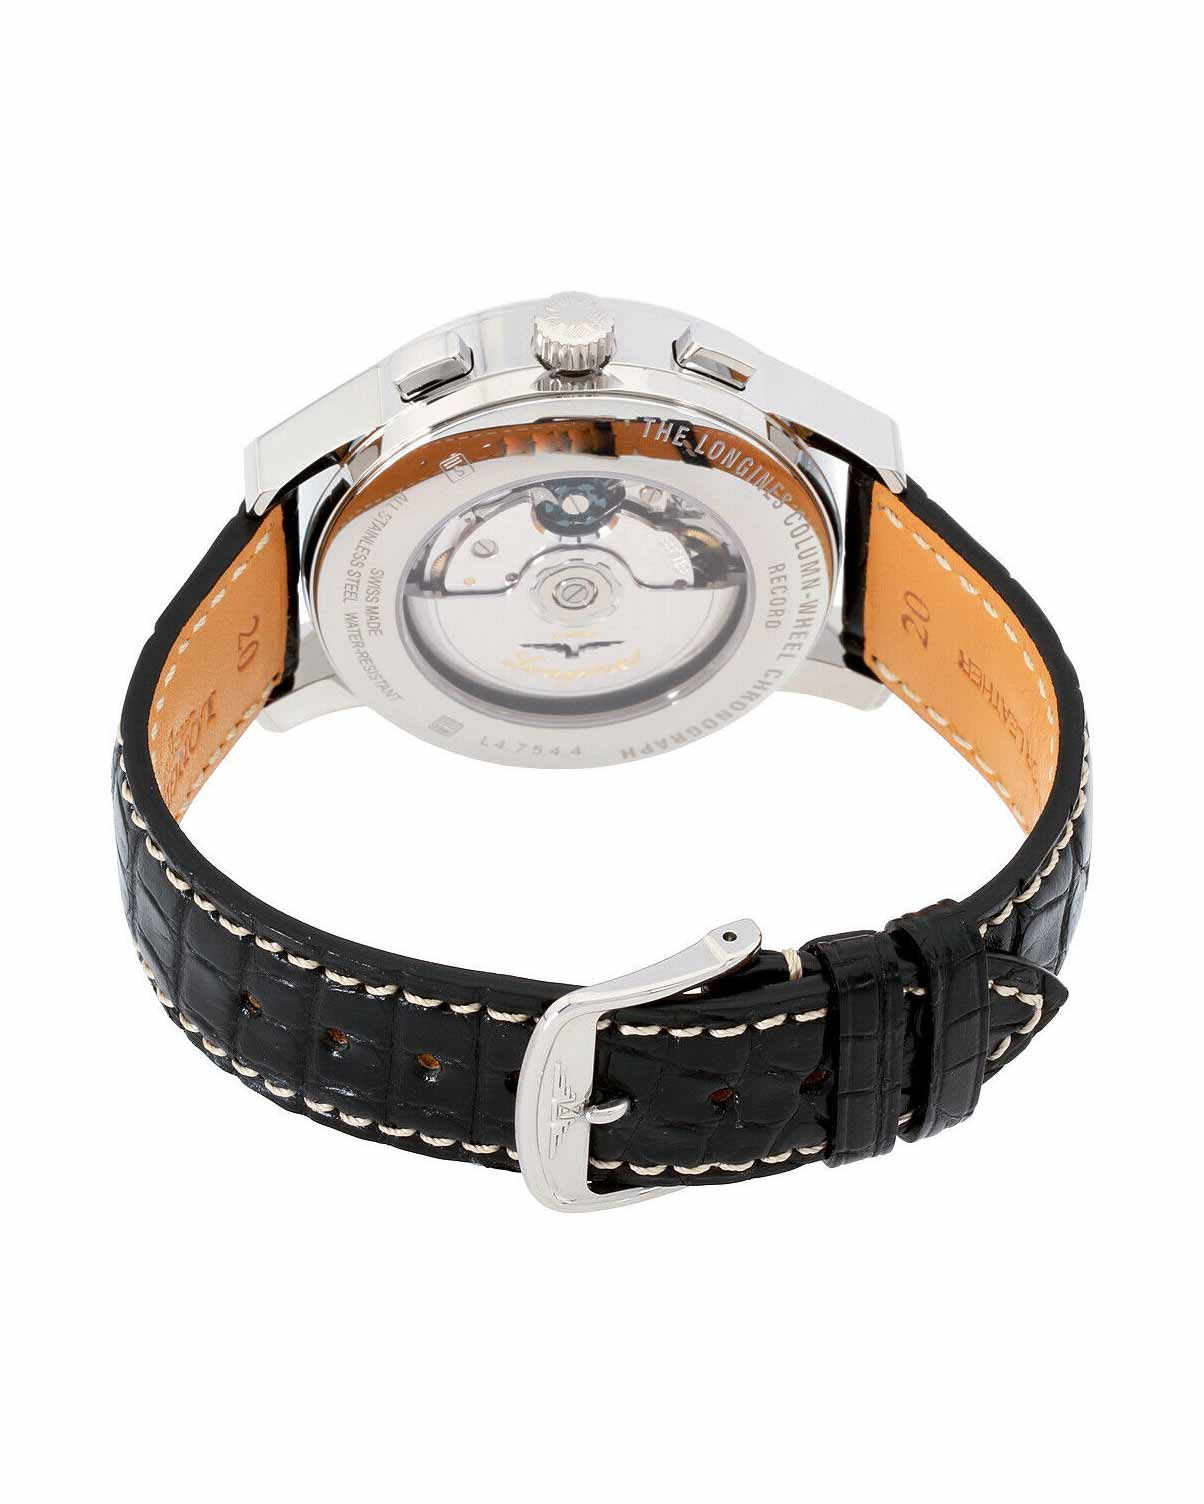 Longines Heritage Black Dial Leather Strap Men's Watch